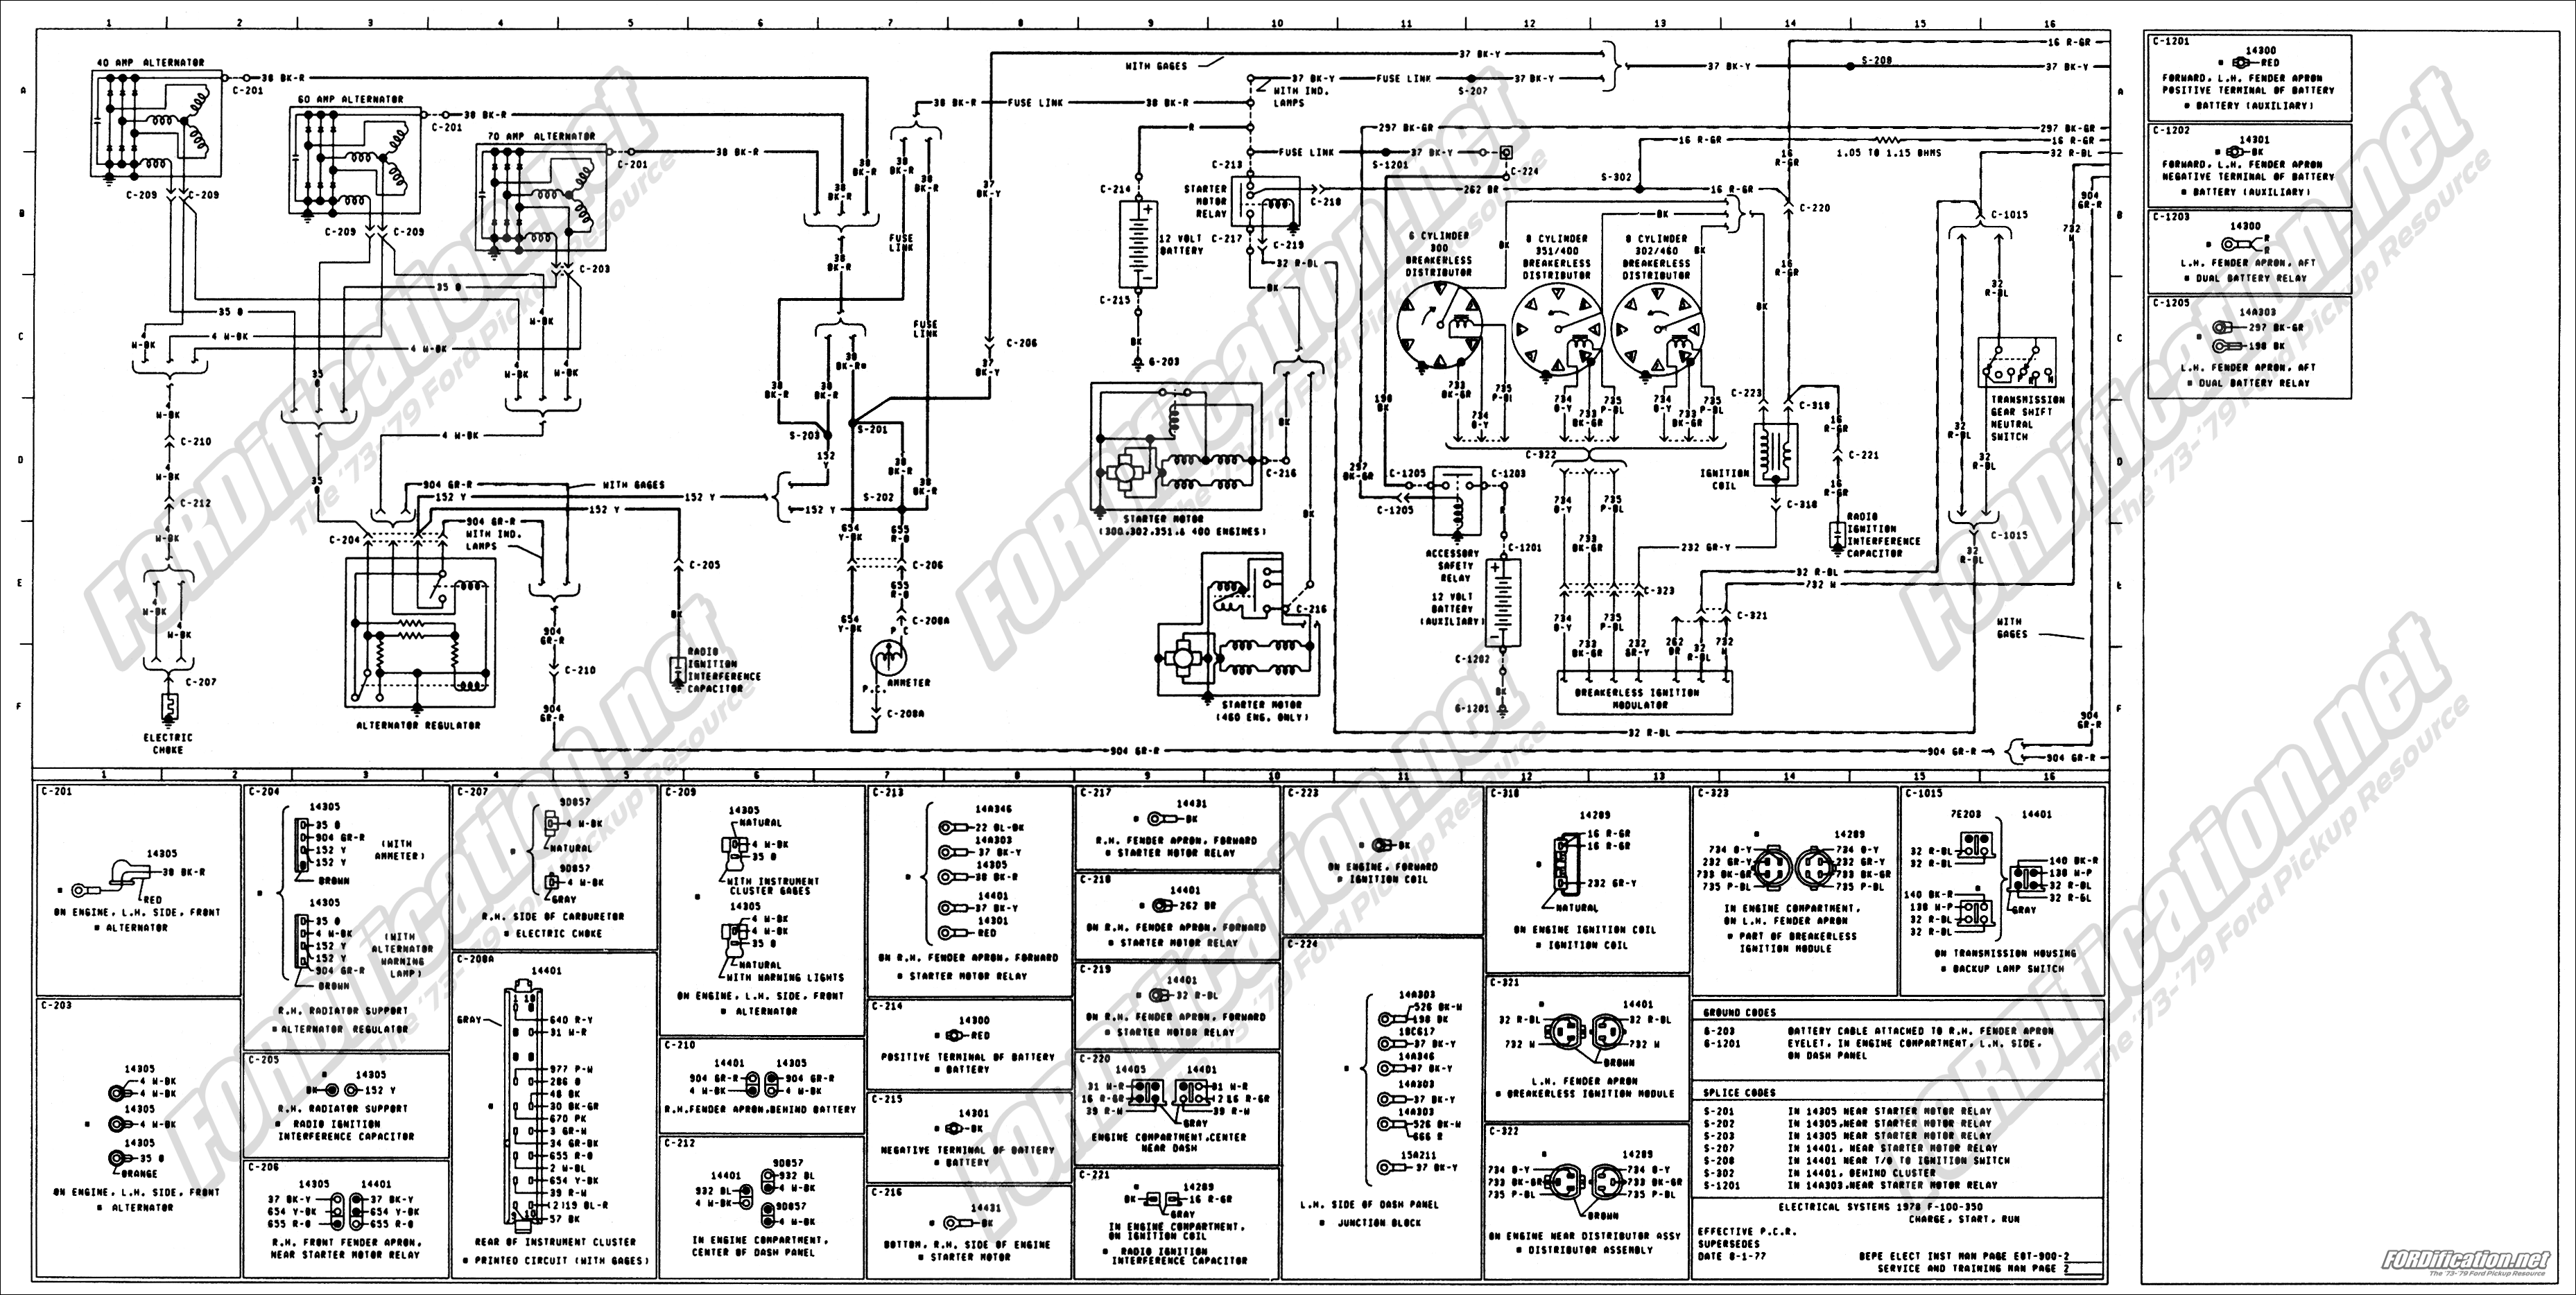 1994 f150 truck alternator wiring diagram 1994 wiring diagrams wiring 78master 3of10 f truck alternator wiring diagram wiring 78master 3of10